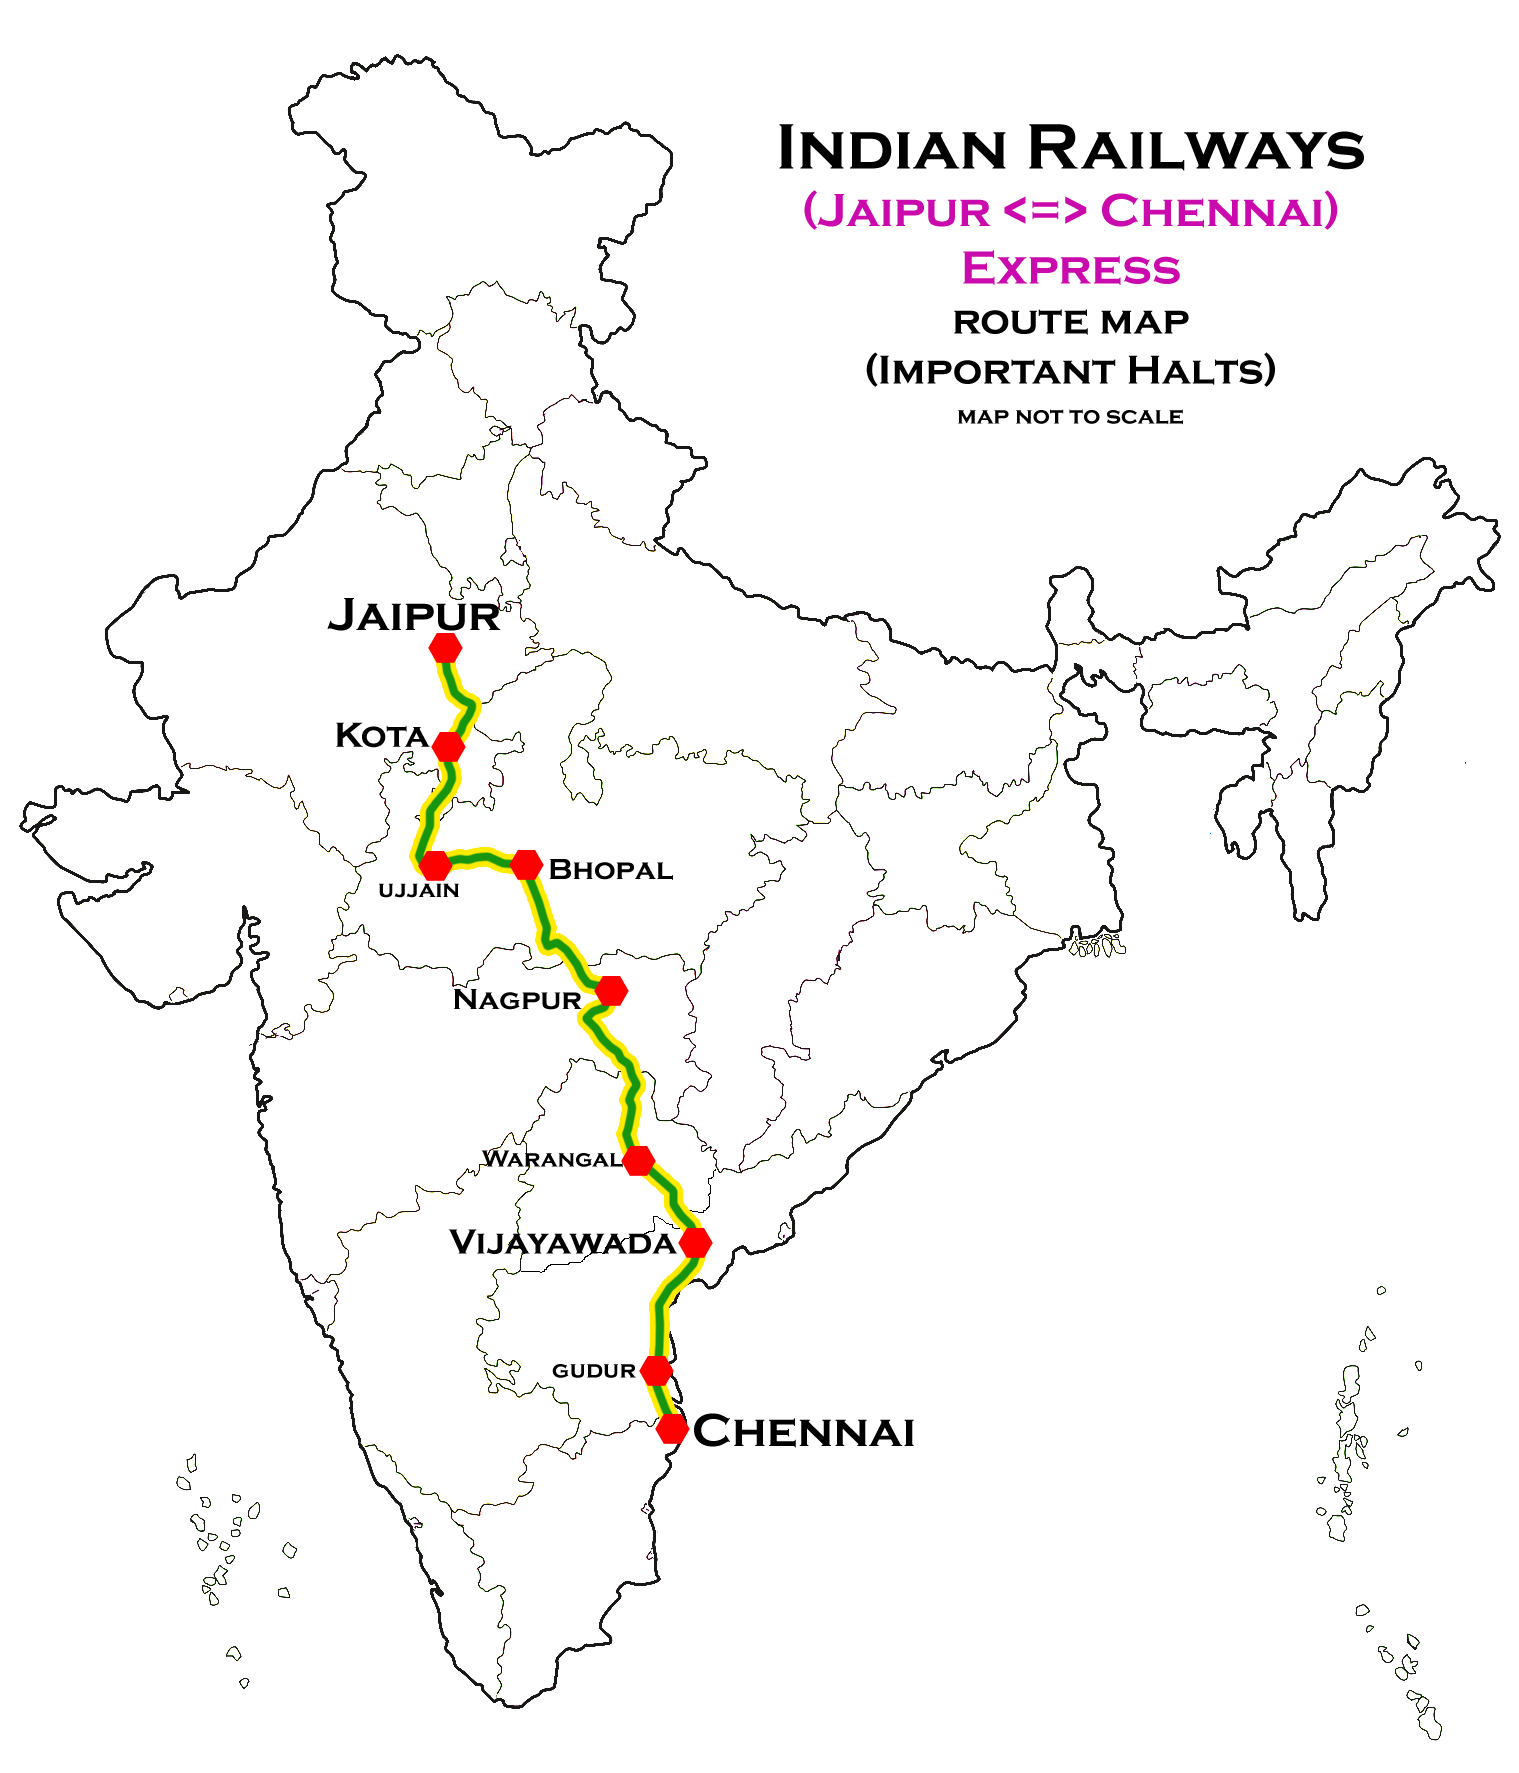 Chennai Central–Jaipur Superfast Express - Wikipedia on indian railway food, indian railways logo, indian railway network, indian railway enquiry, auto train route map, indian rail route, us train routes map, indian railway fare table, indian railway ticket availability, pakistan railway track map, indian railways seat availability, transcontinental railroad route map, indian railway schedule, european train route map, indian railway reservation, india railway map, indian railway timetable, indian railway stations, mt. shasta route map, ferdinand magellan's route map,